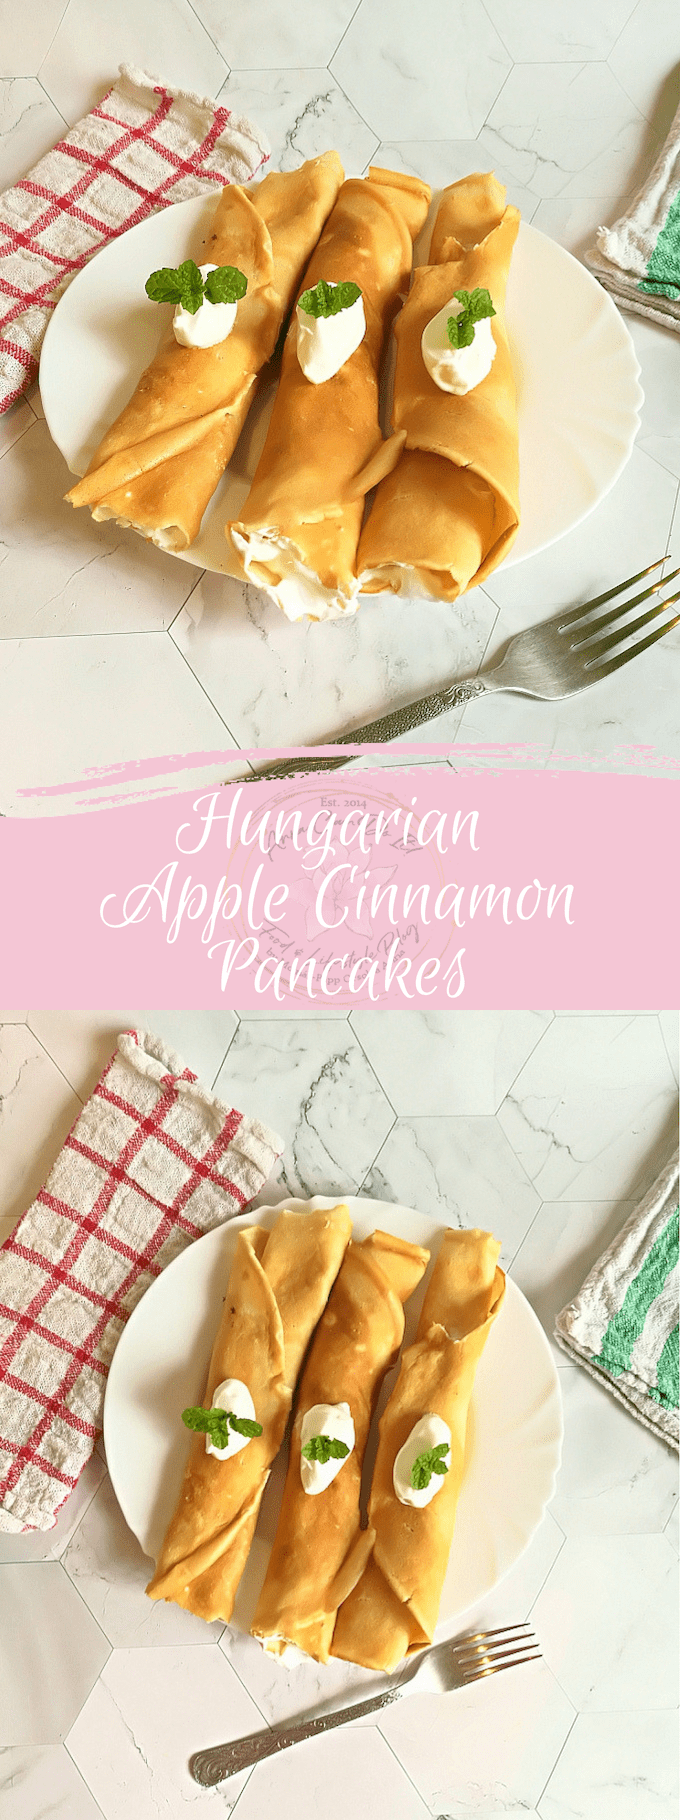 Hungarian Apple Cinnamon Pancakes - Almás-Fahéjas Palacsinta - Anna Can Do It!